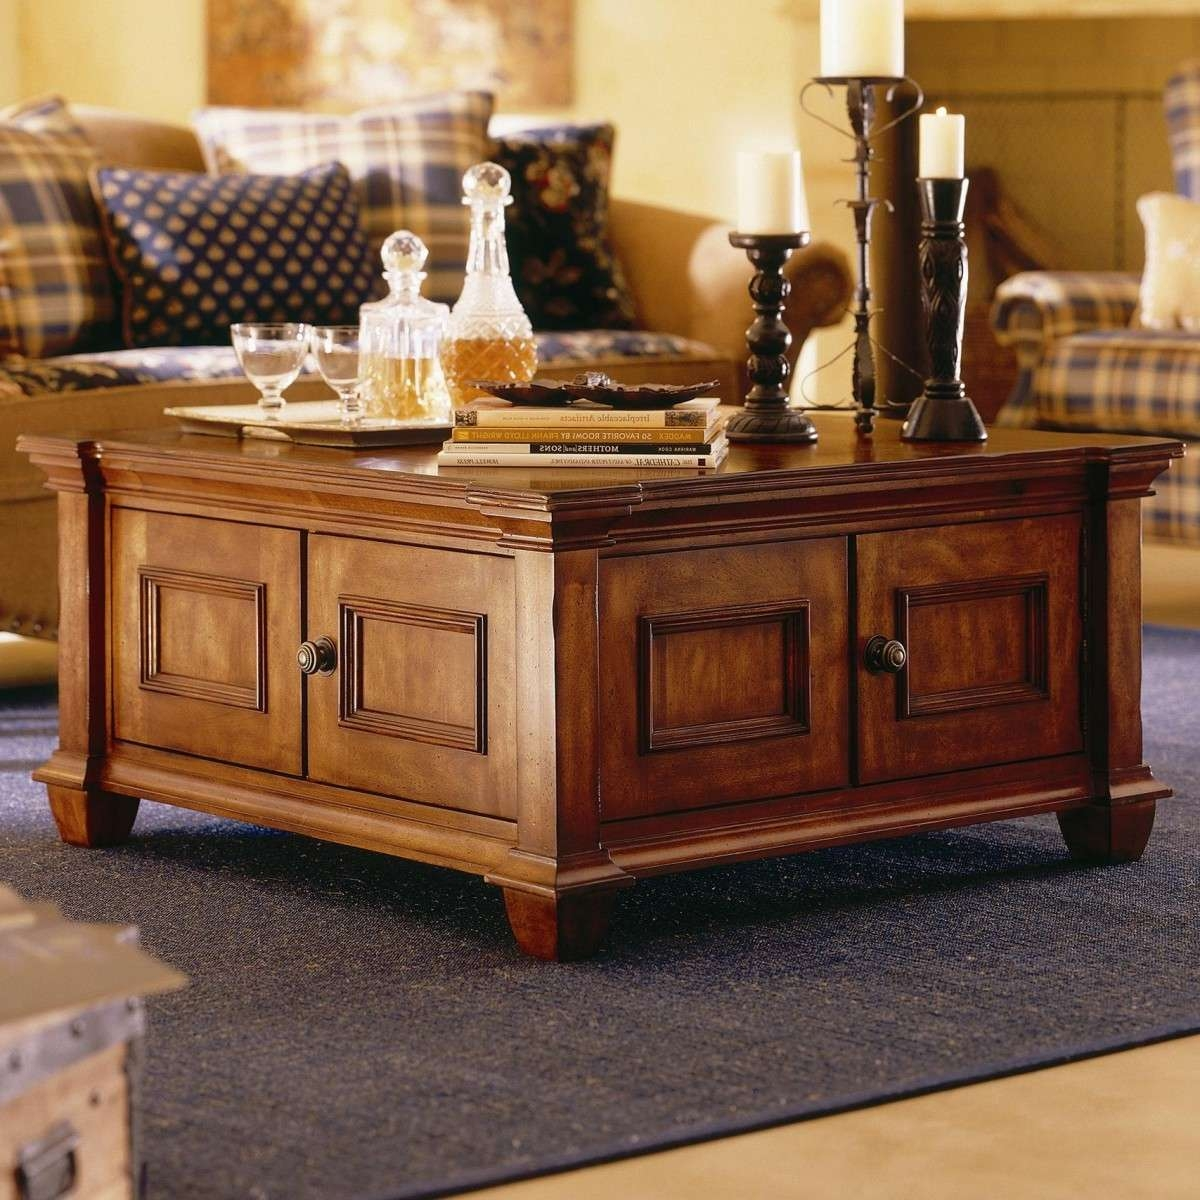 Trendy Square Wood Coffee Tables With Storage Intended For Coffee Tables : Square Coffee Table With Storage Cubes Drawers (View 2 of 20)